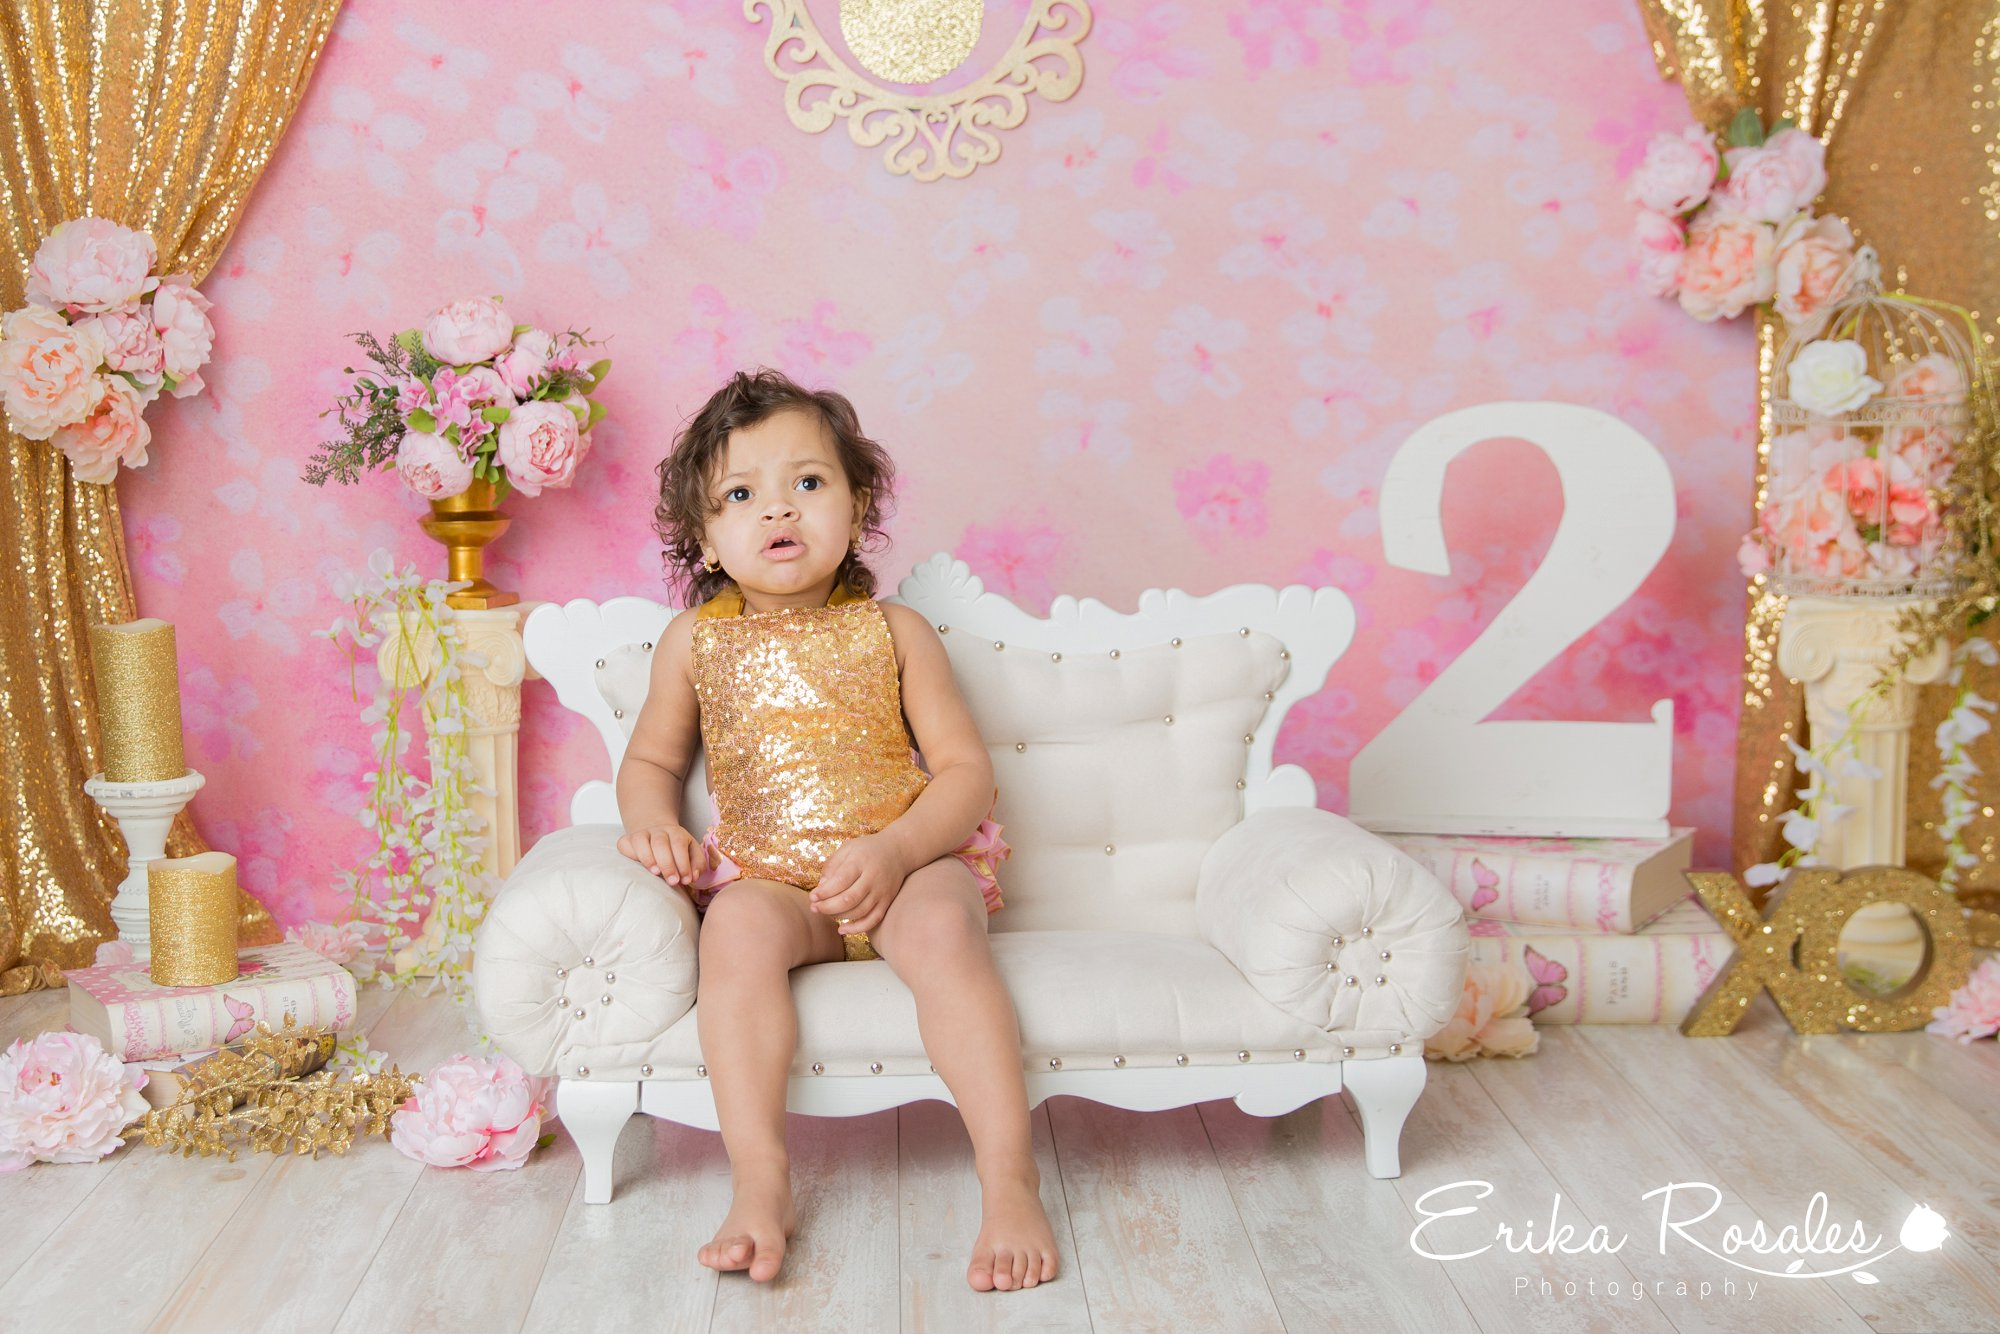 This entry was posted in children photo session and tagged altamaya studio baby girl 2 year old baby girl birthday baby girl photo session